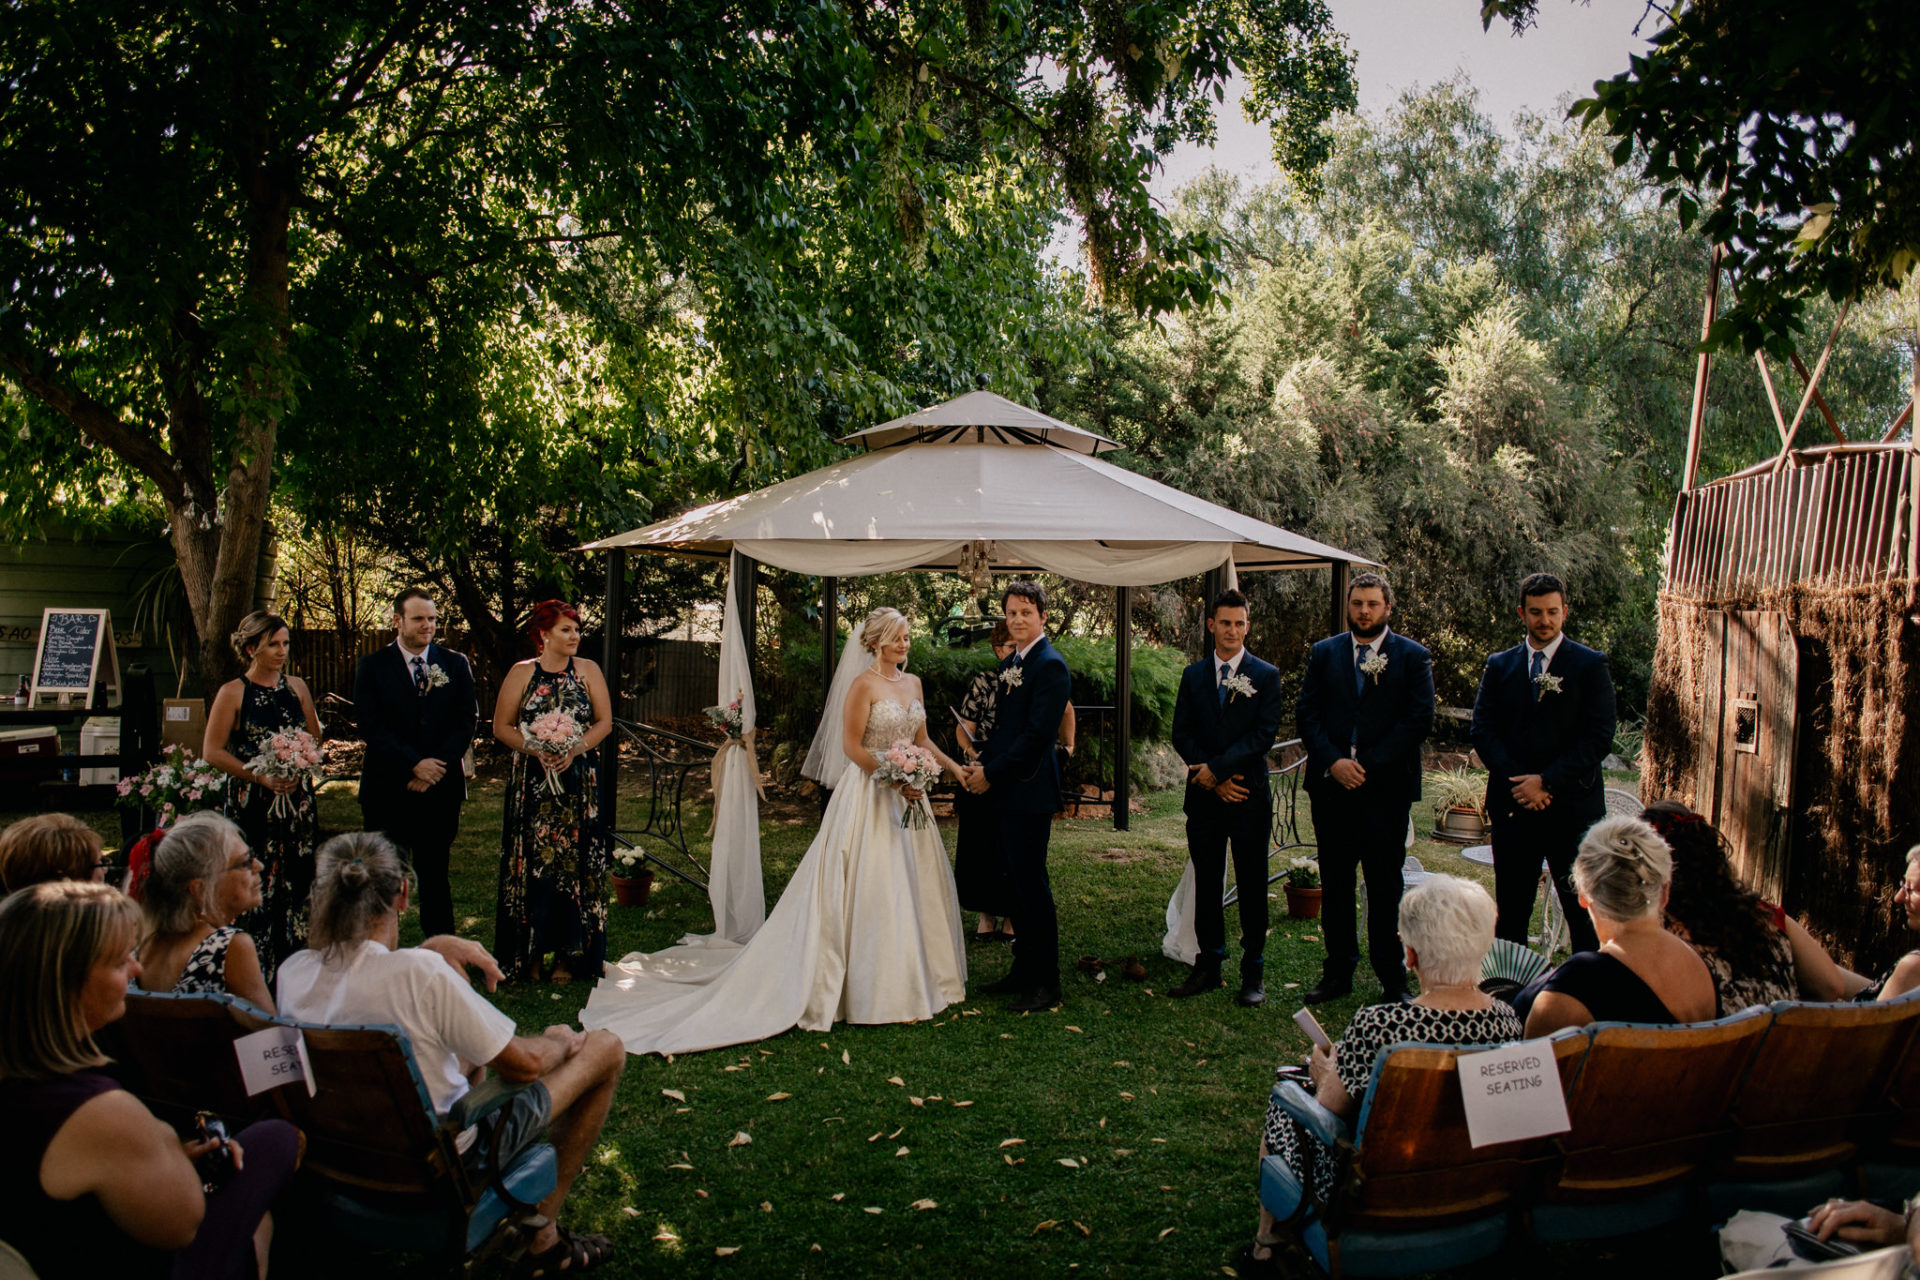 backyard-wedding-australia-melbourne-ceremony-garden-bridal-party-cinema-seats